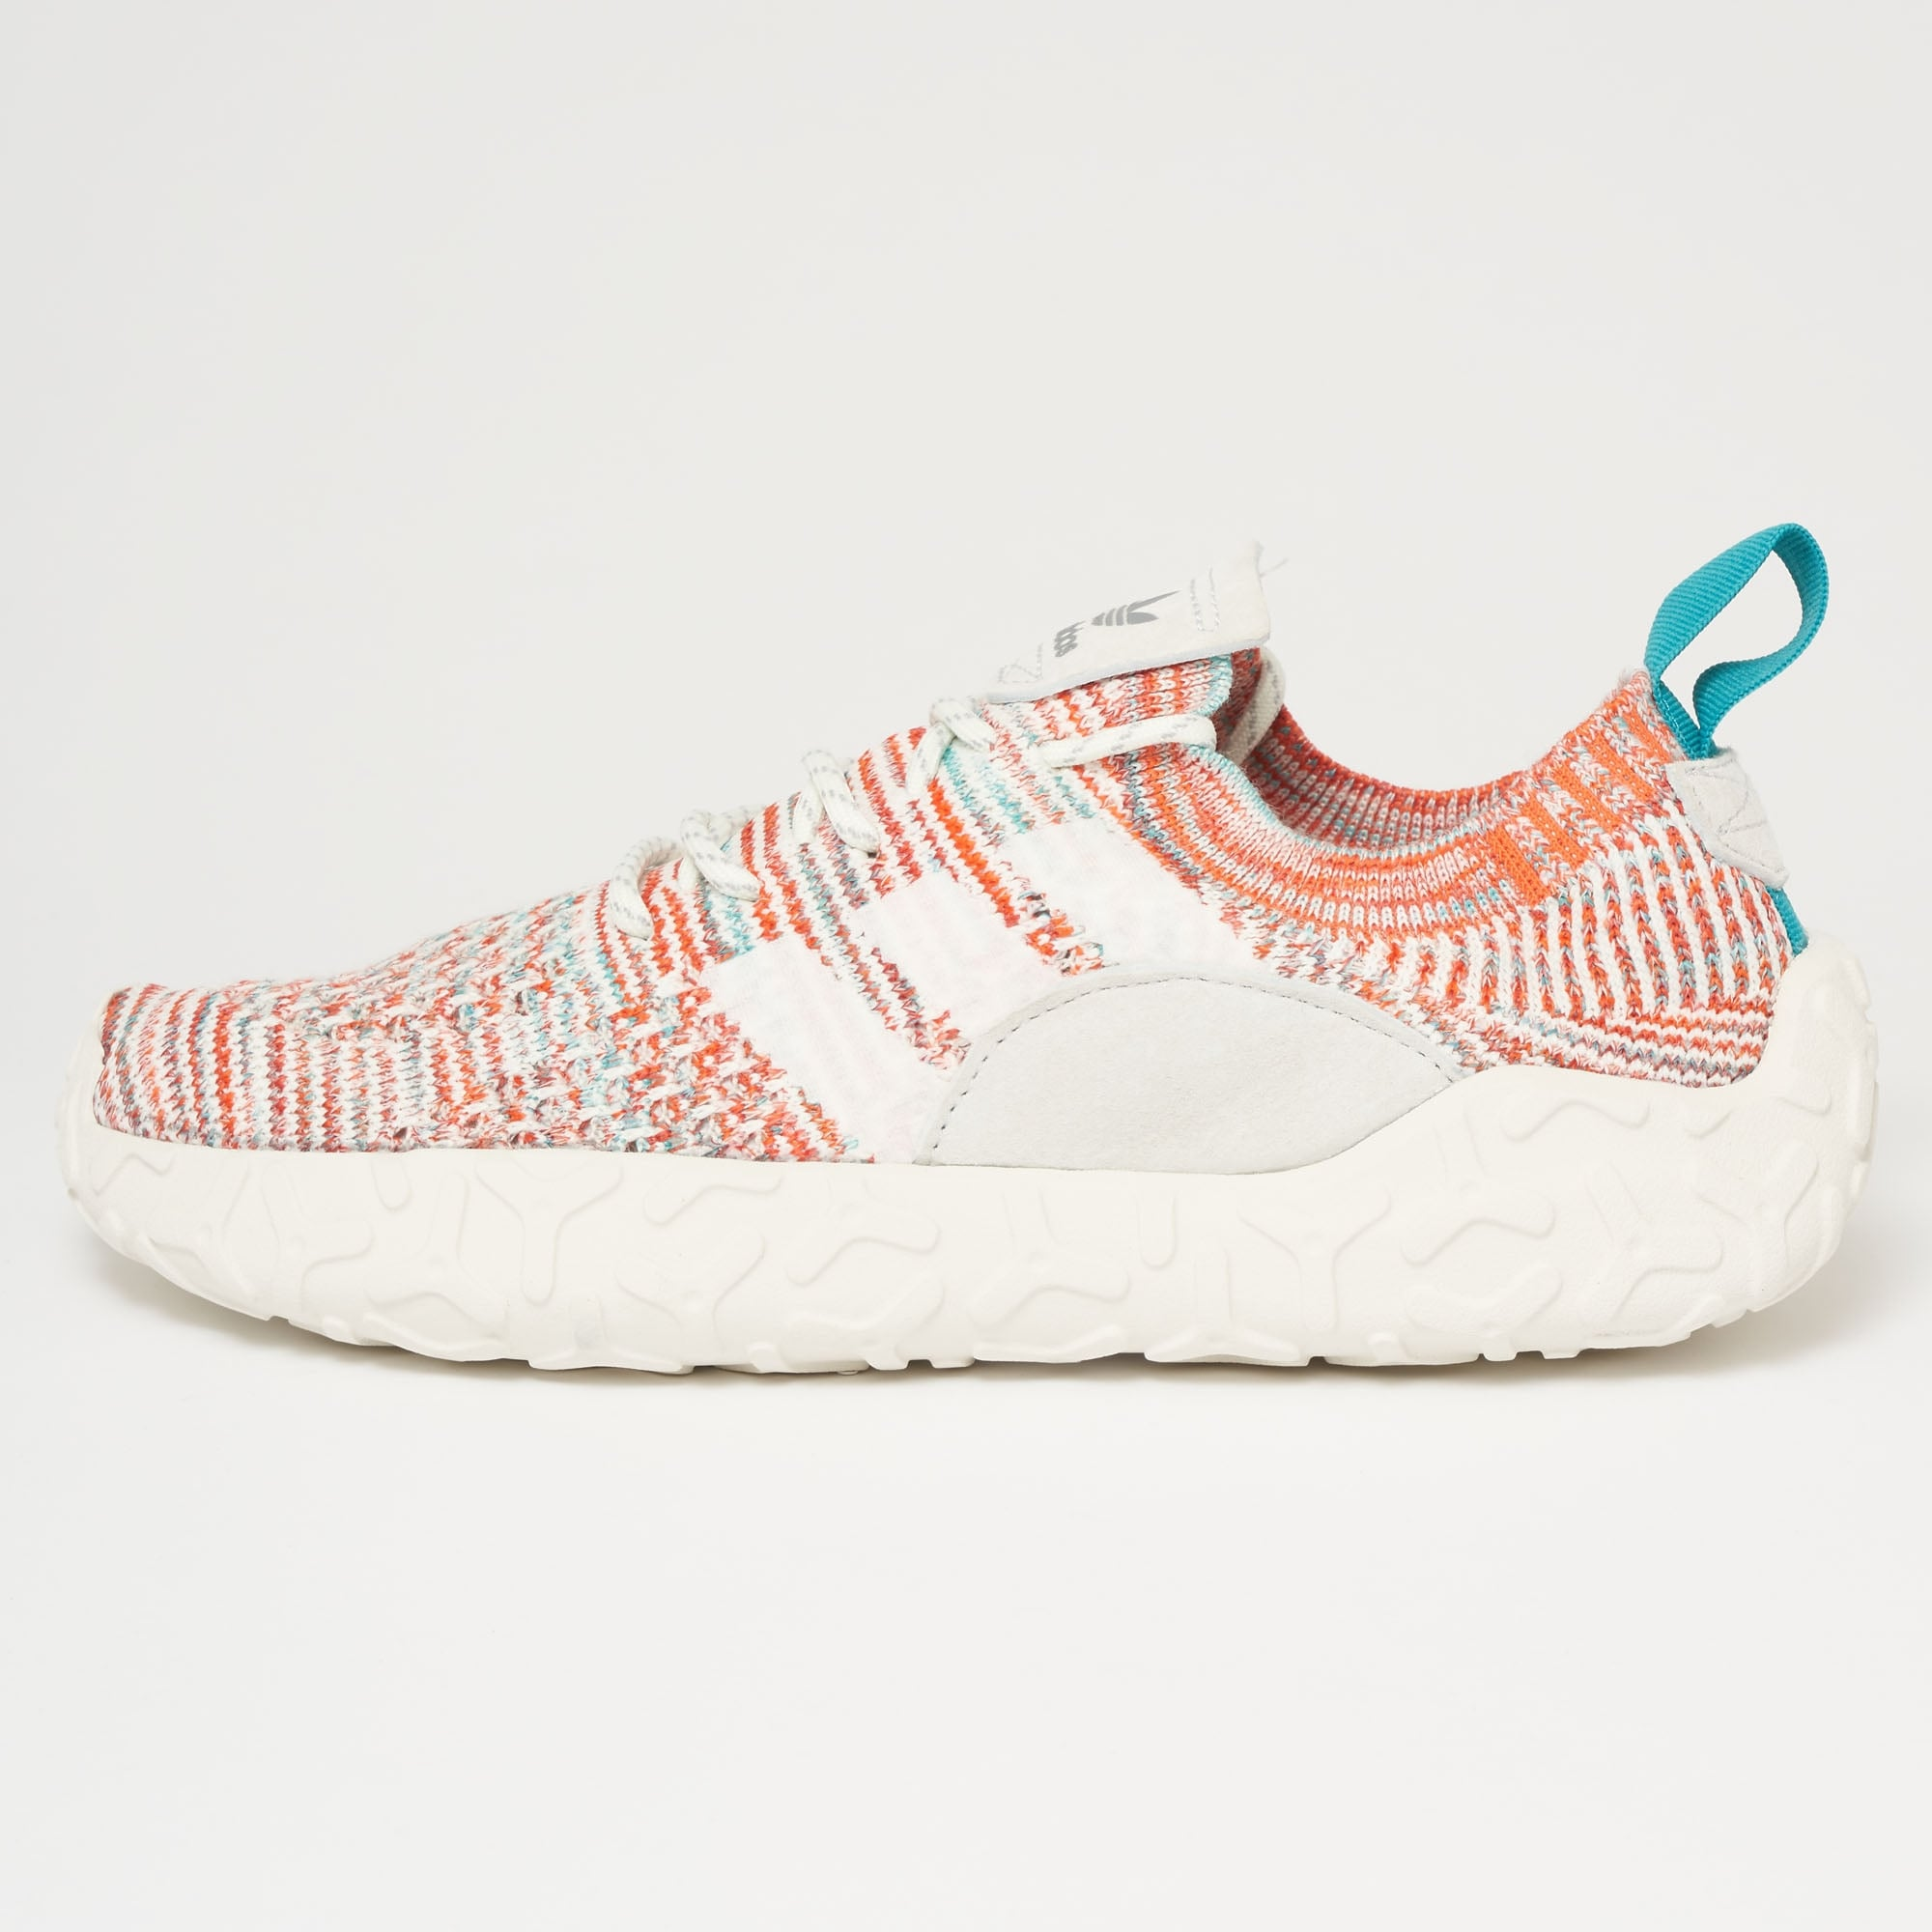 cheap for discount 82e3c 954c1 F22 Primeknit - Trace Orange, Crystal White amp FTWR White